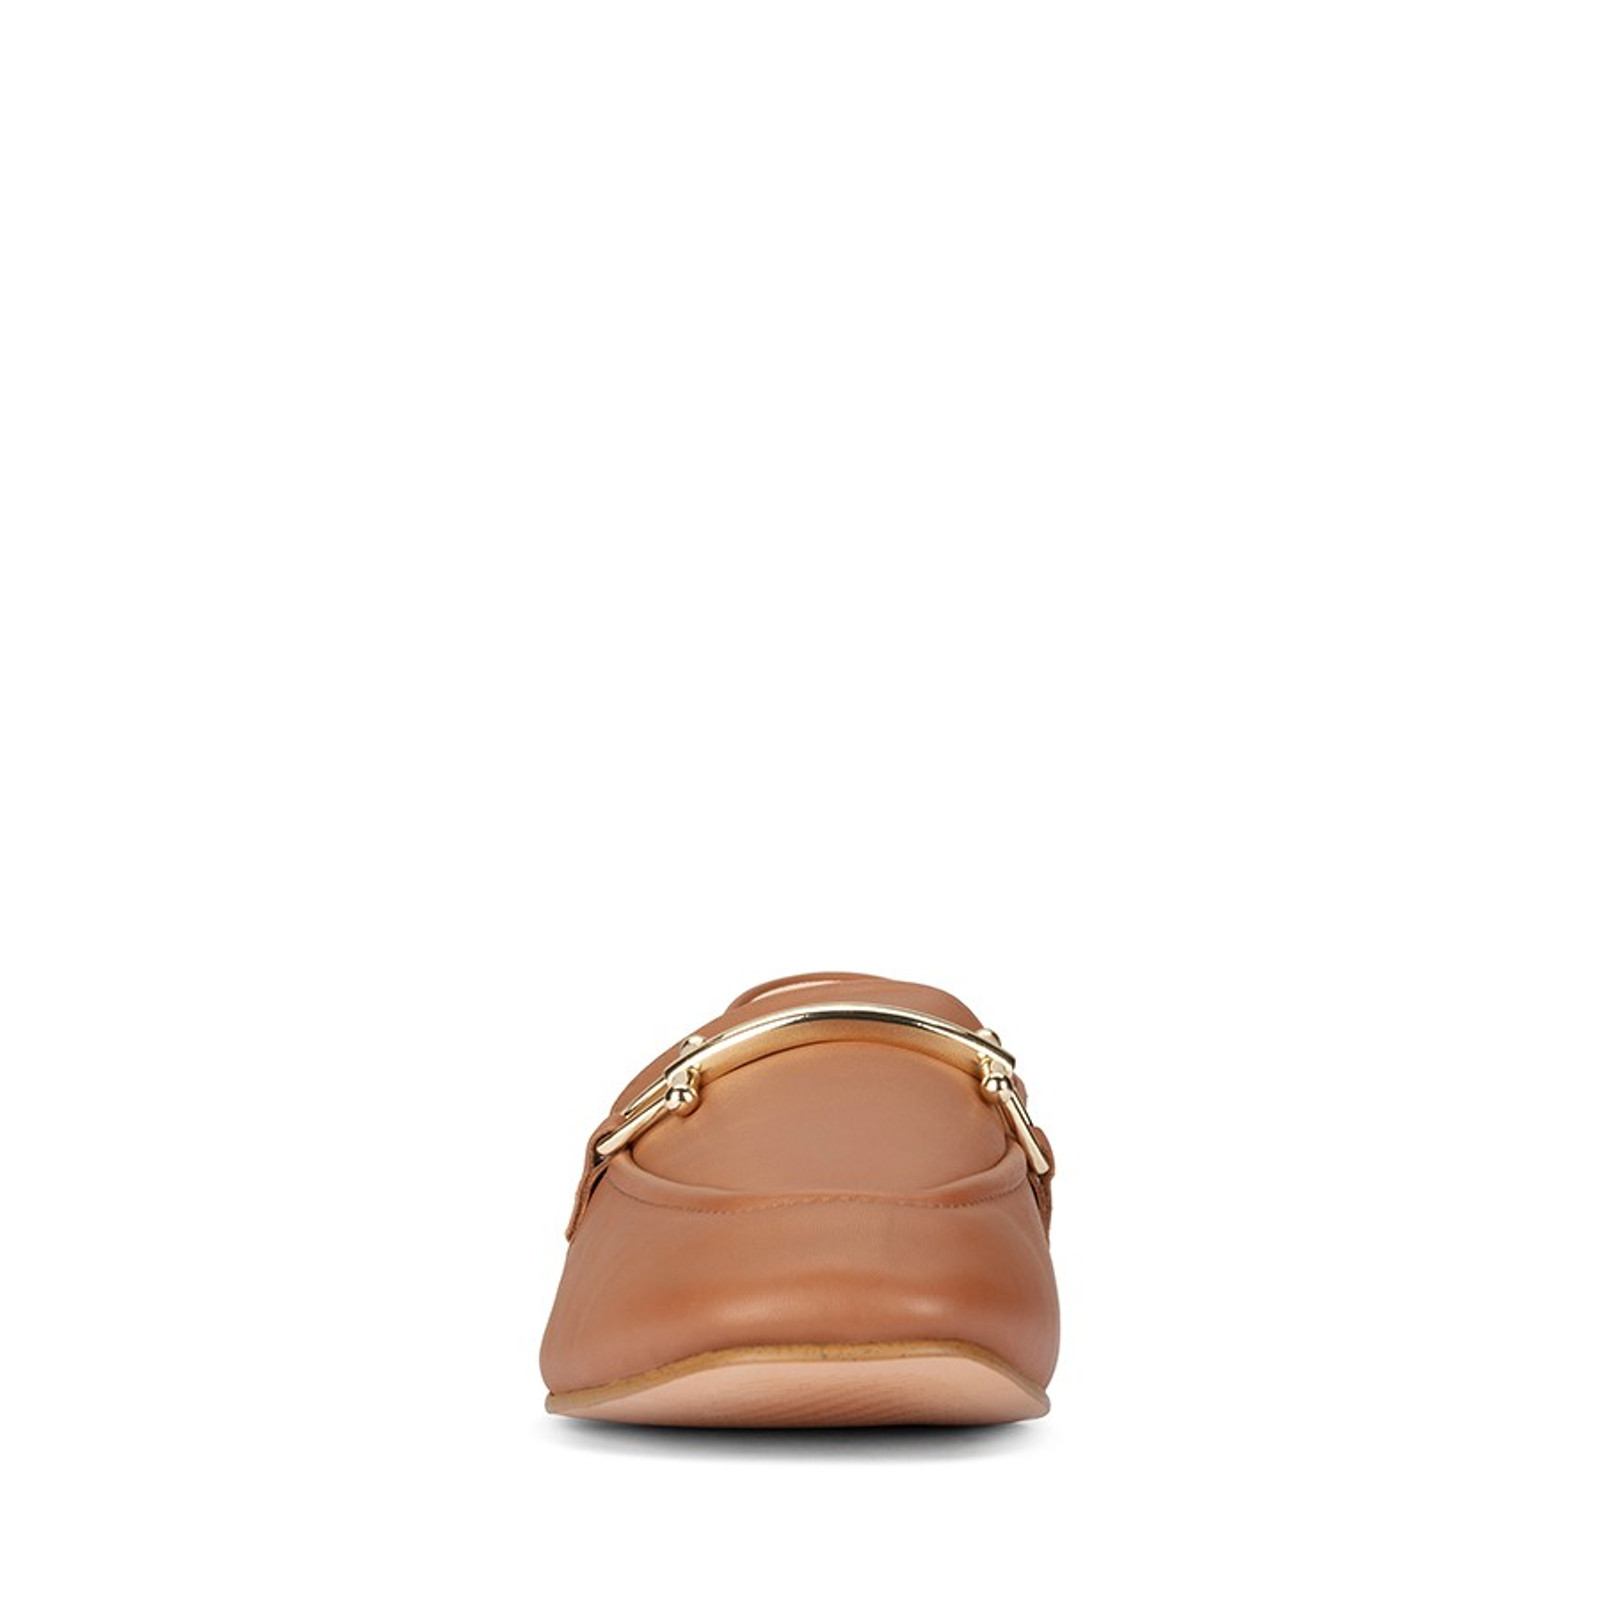 Clarks Womens PURE2 LOAFER Dark Tan Leather